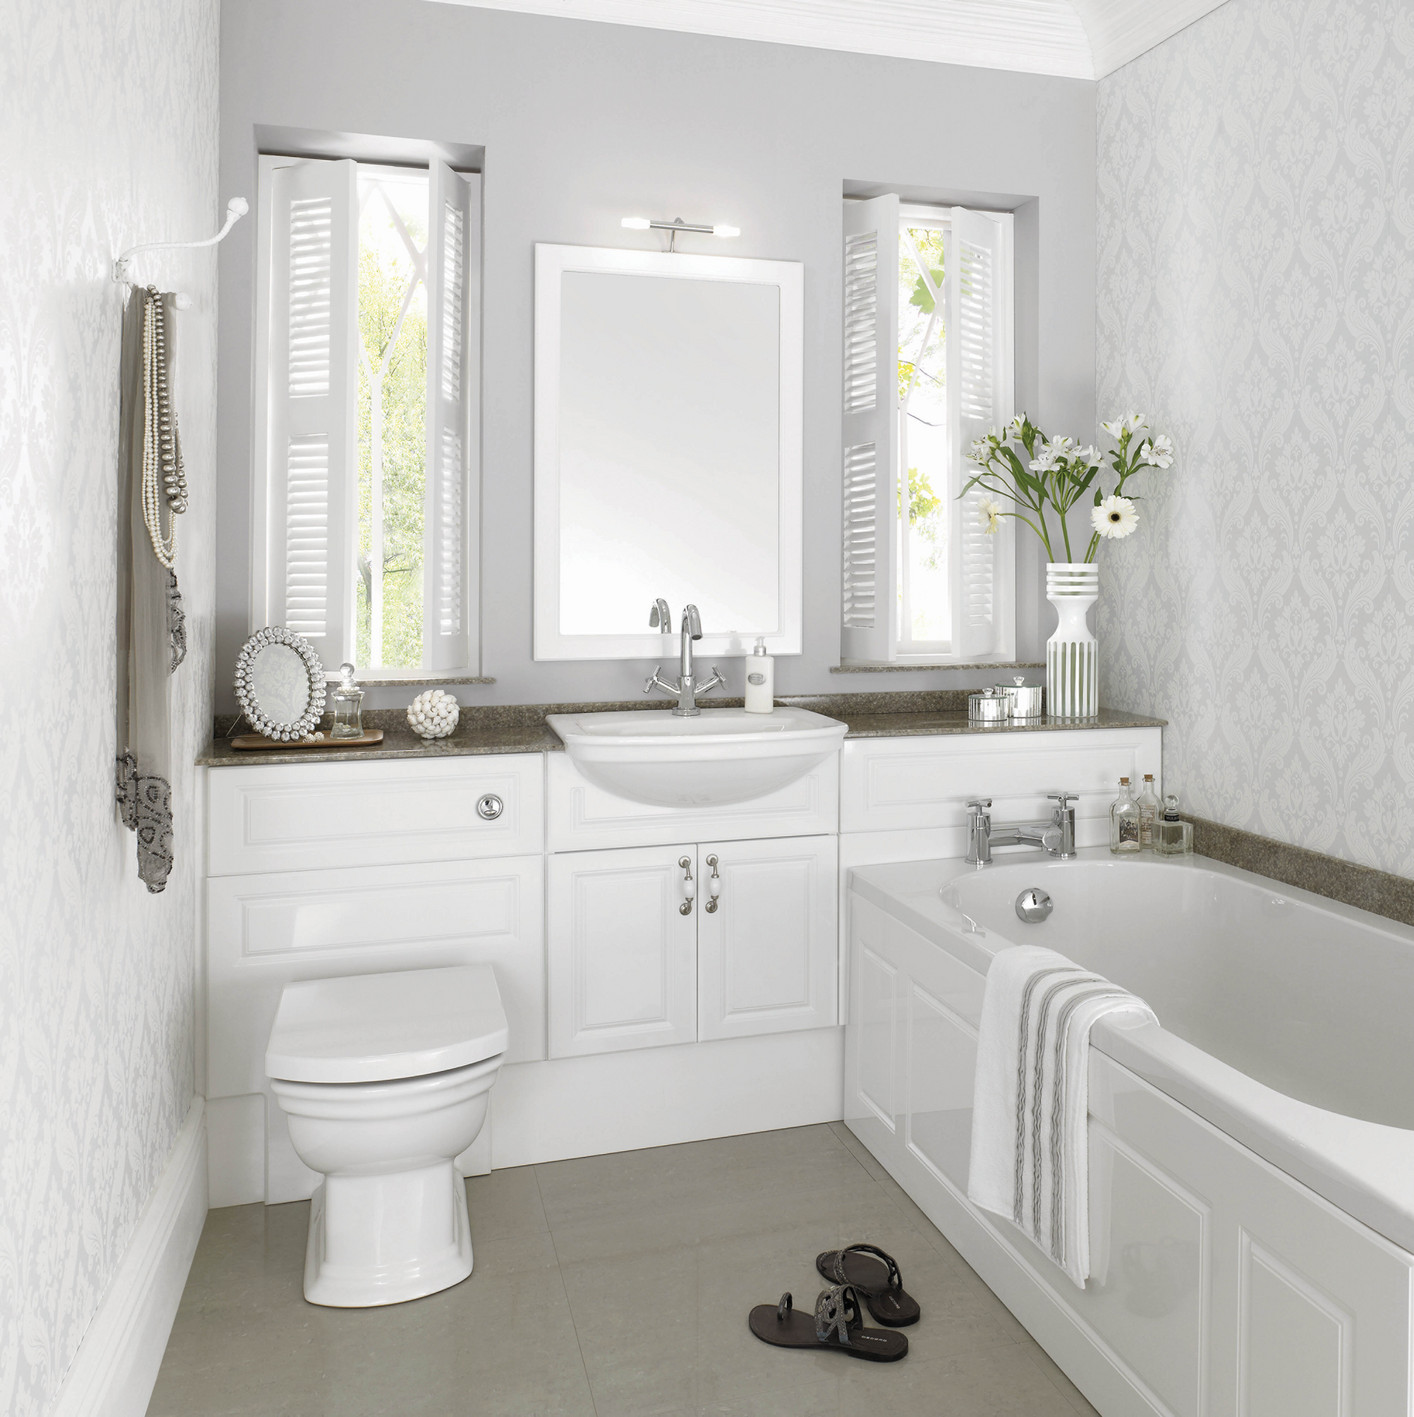 Excellent Ugly Bathroom Tile Cover Up Small Wash Basin Designs For Small Bathrooms In India Solid Bathroom Vainities Image Of Bathroom Cabinets Young Cleaning Out Bathroom Exhaust Fan ColouredLaminate Flooring For Bathrooms B Q Vanity Bathroom Suite